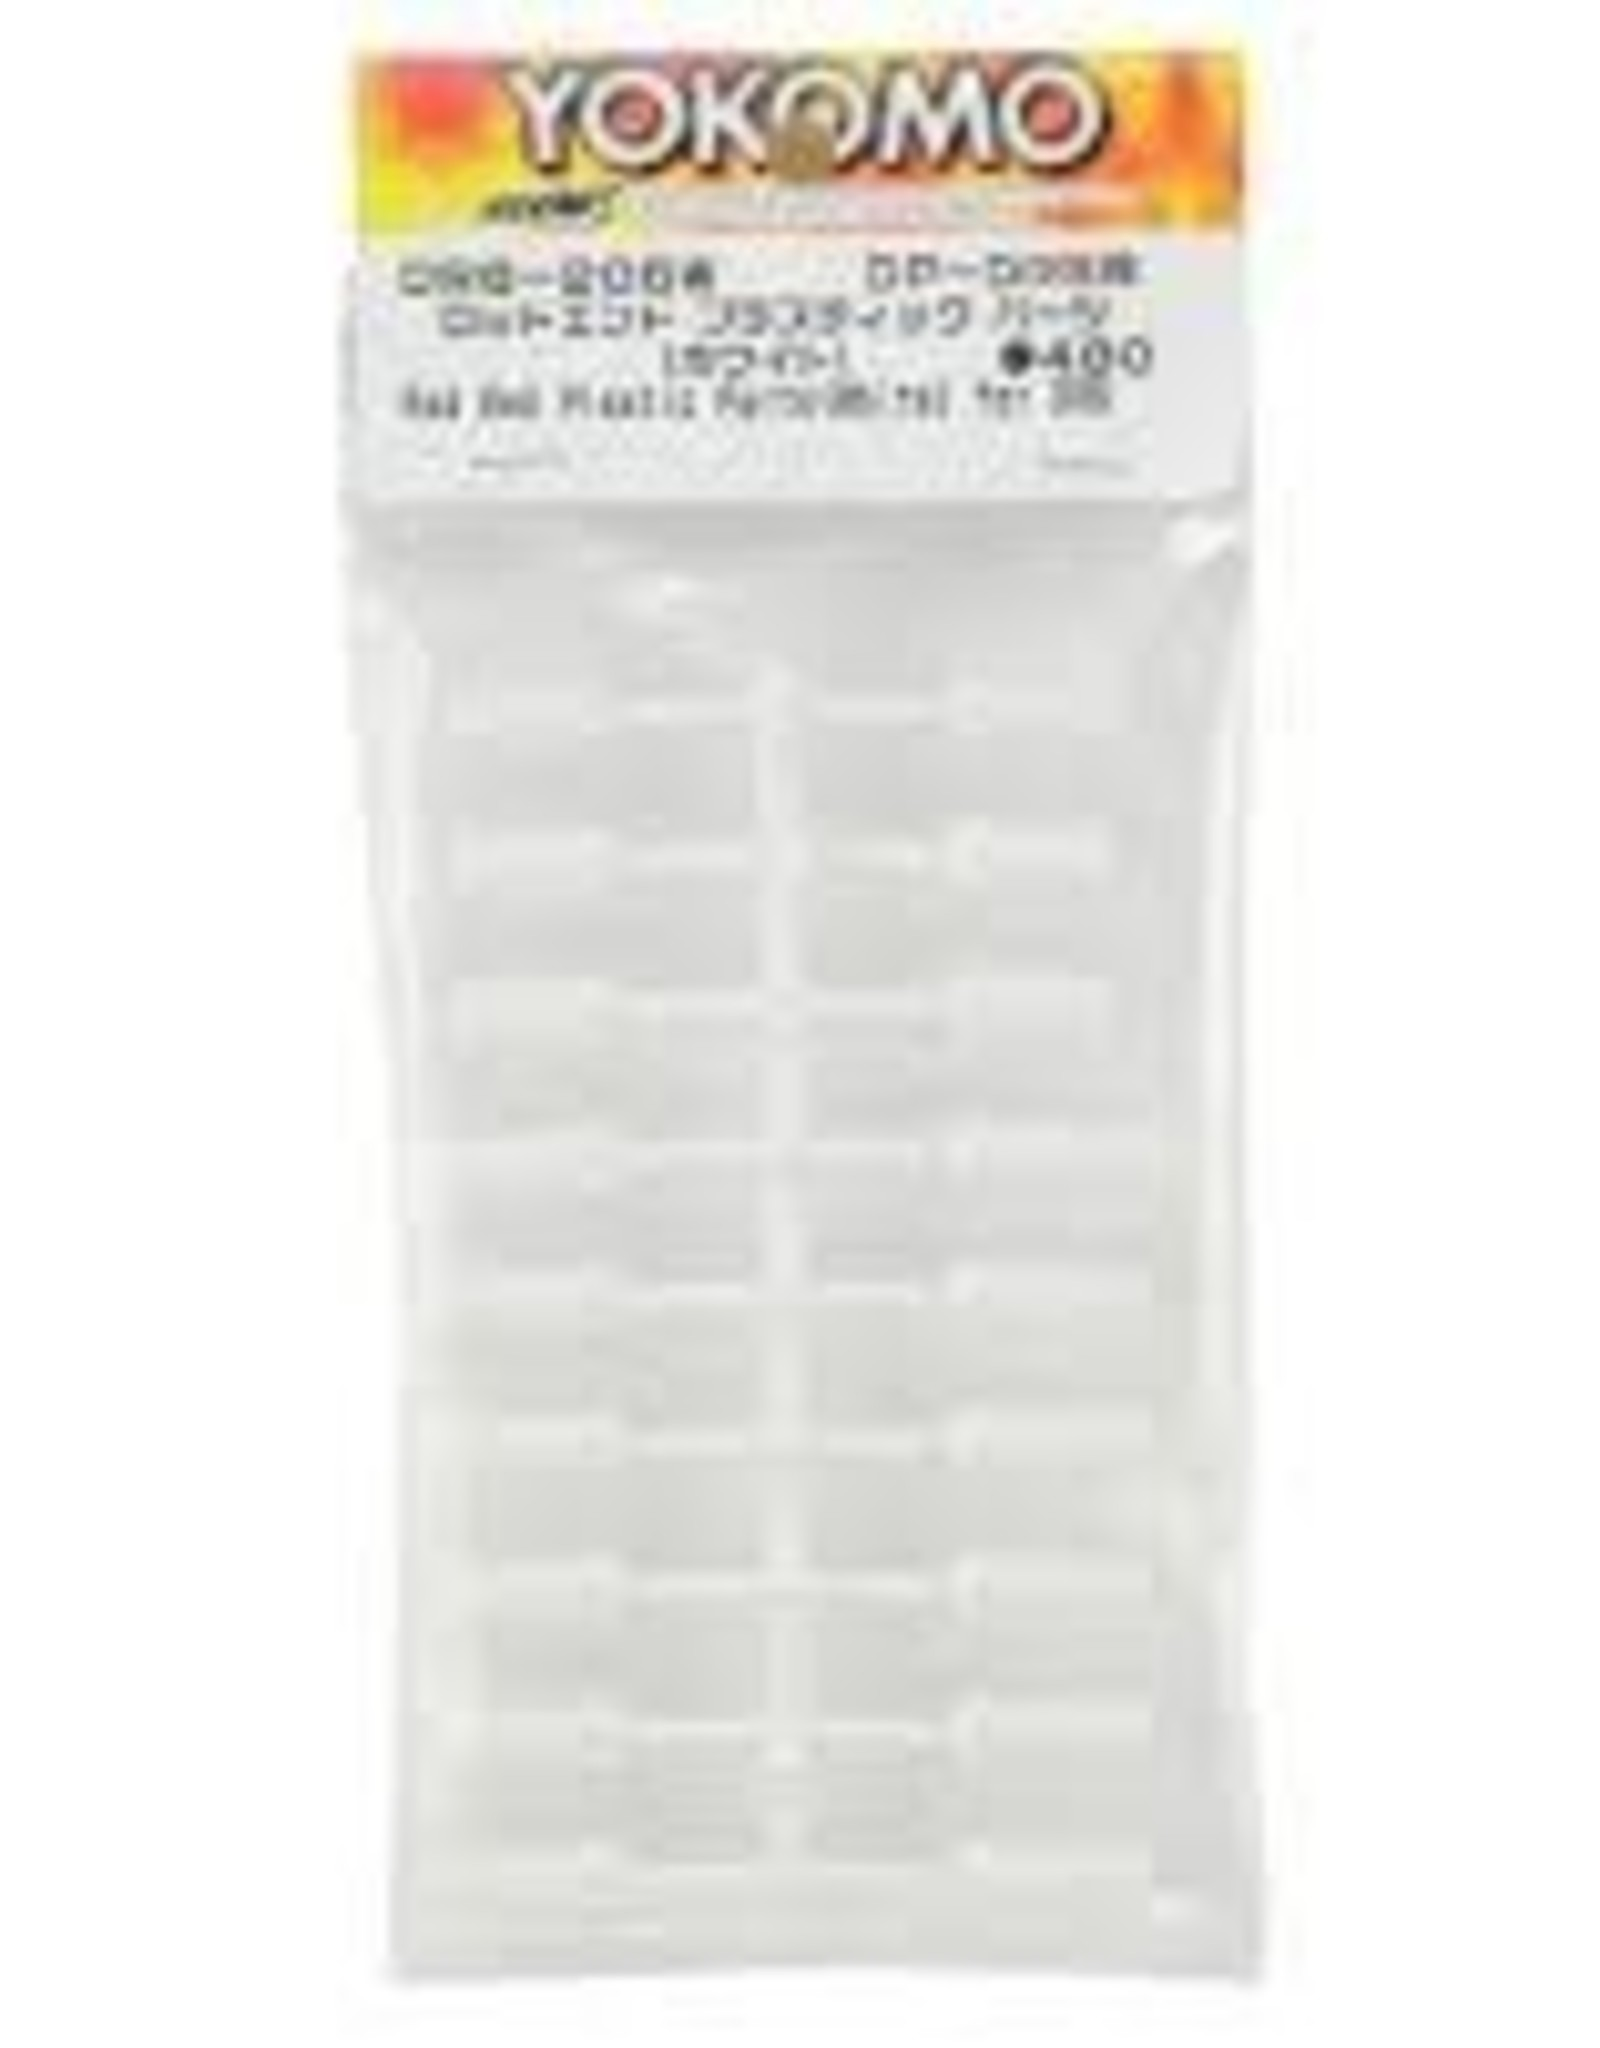 Yokomo YOKDRB-206W Rod End Plastic Parts (White) DRB-206W Yokomo